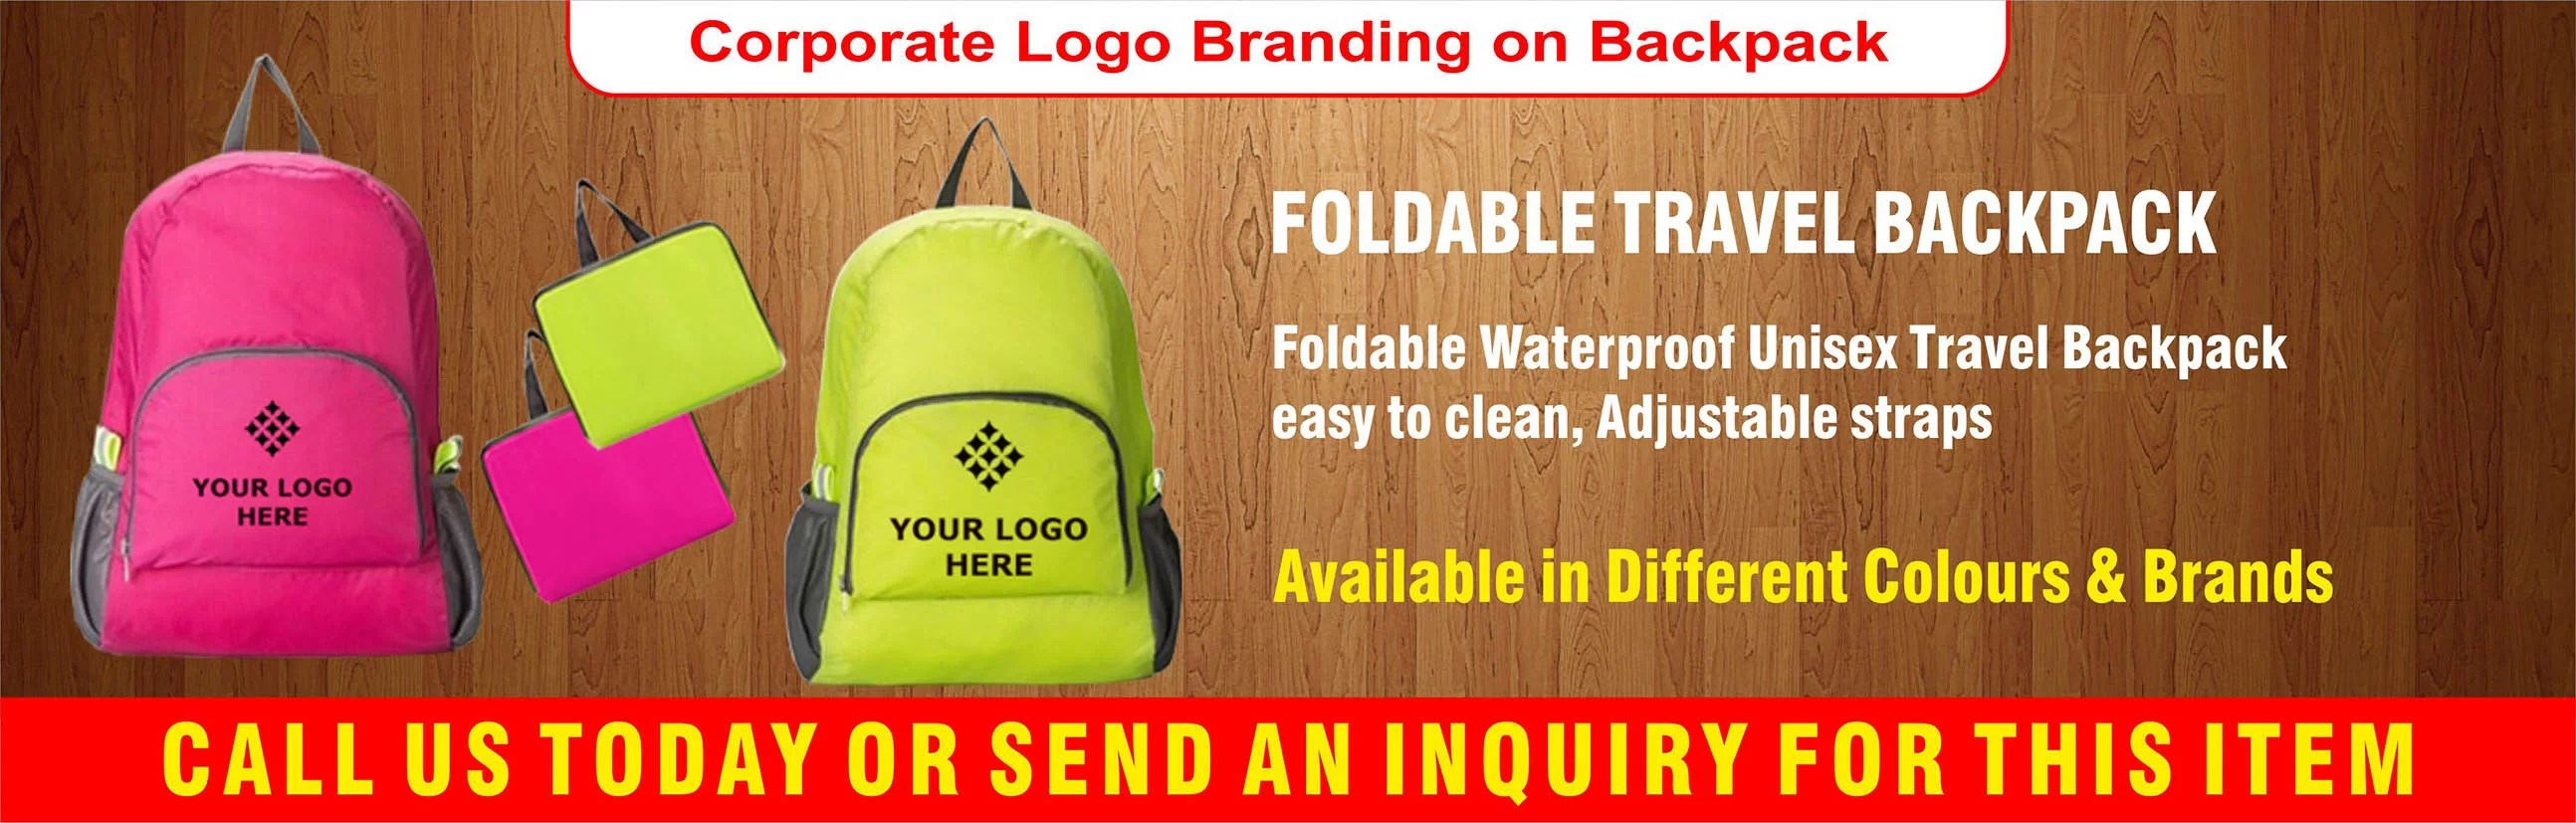 Foldable Backpacks, Triangular Backpack, Backpack Bags Dubai & UAE